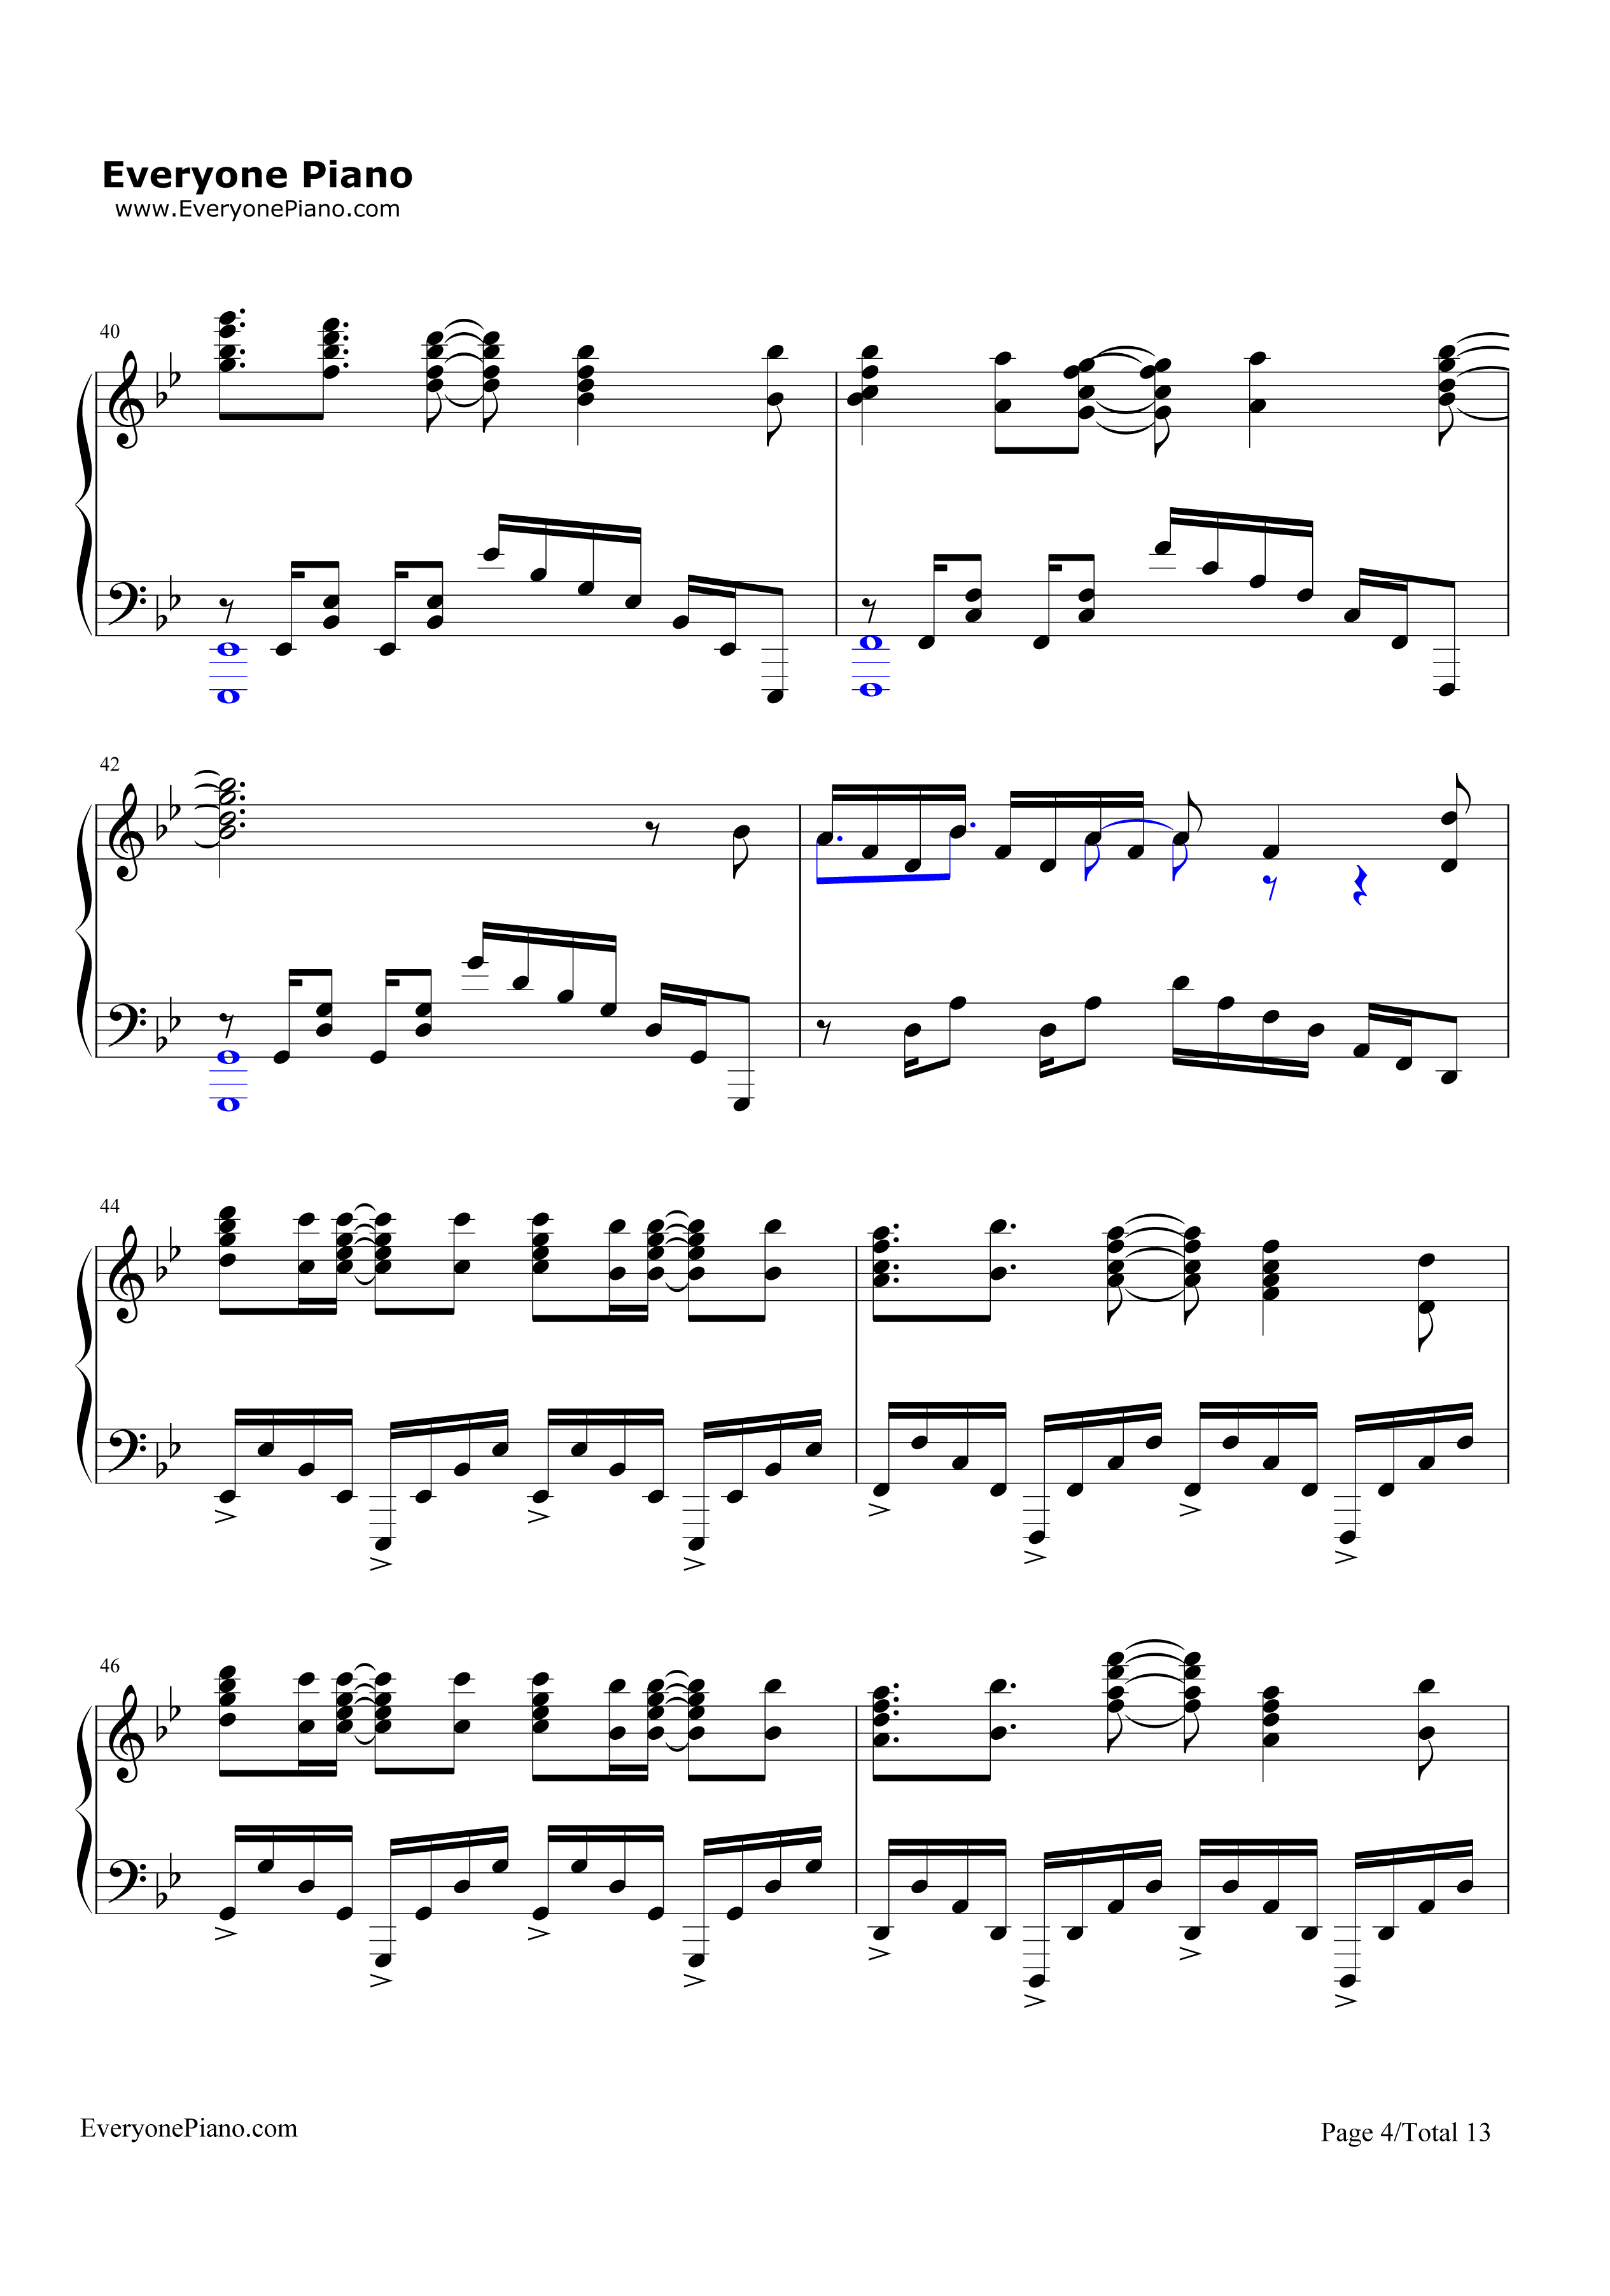 Unravel-Tokyo Ghoul Theme Stave Preview 4-Free Piano Sheet Music u0026 Piano Chords